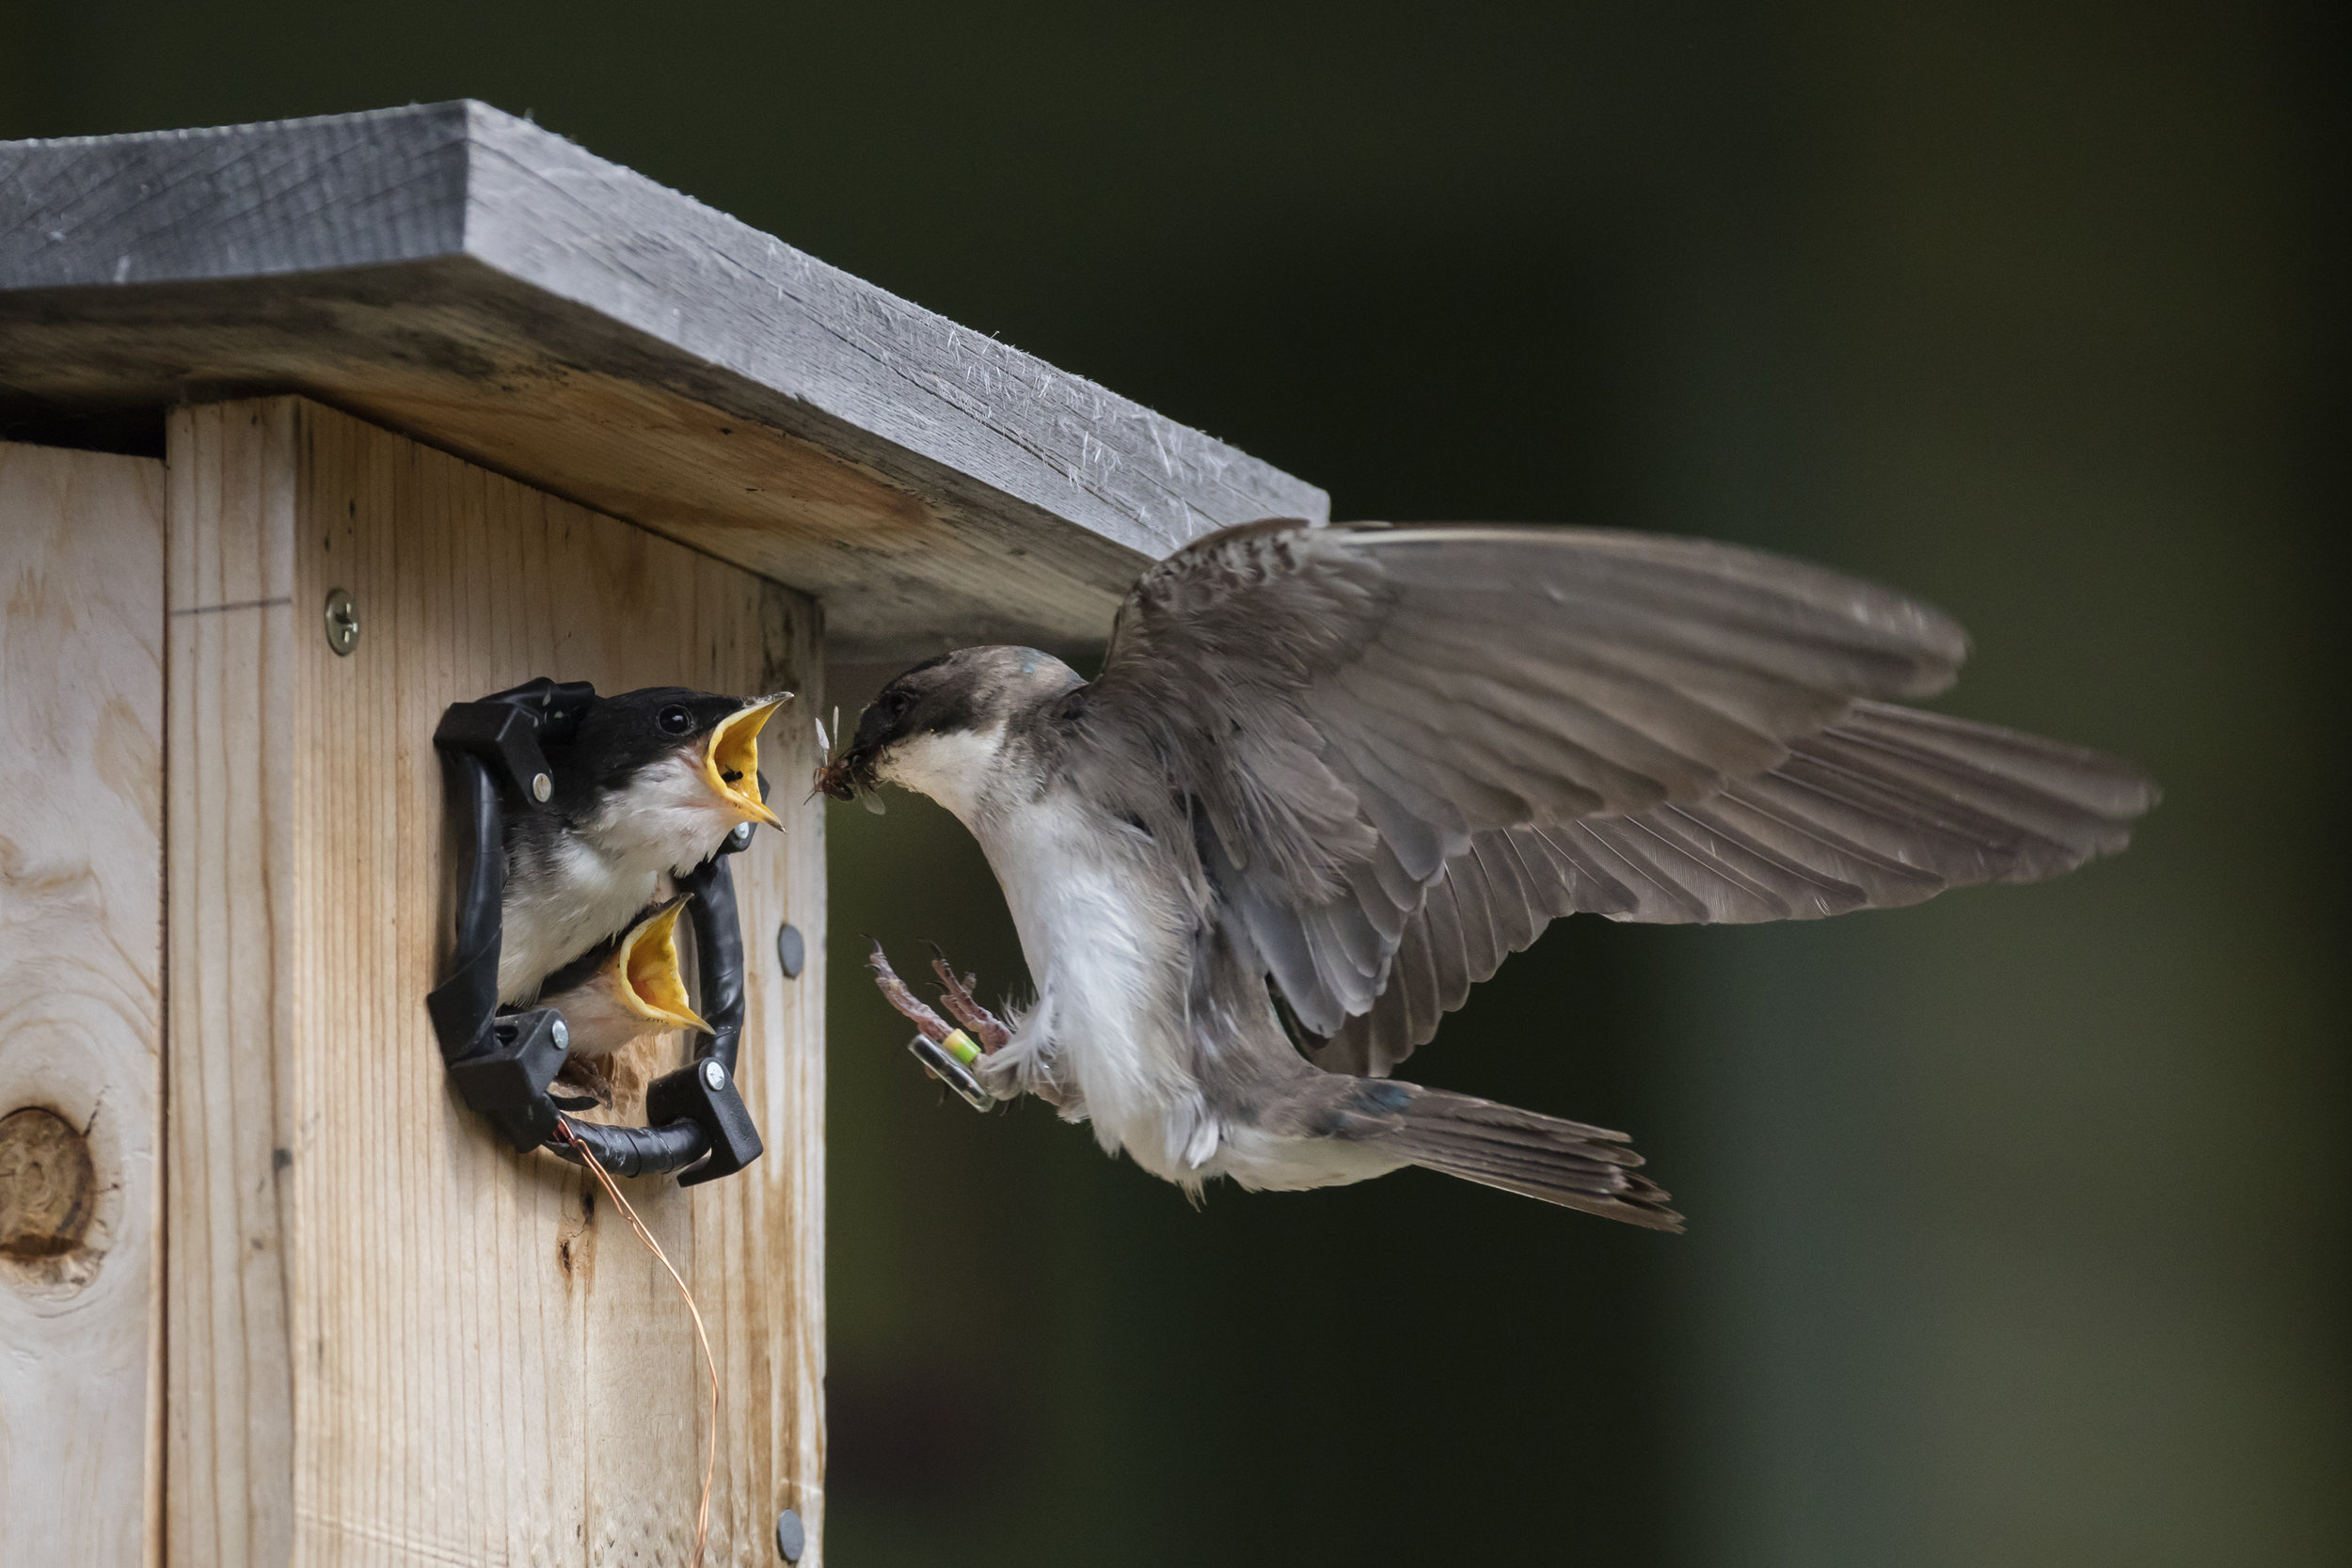 Banded swallows that are part of a long-term study by researchers supported at the Wrangell Mountain Center